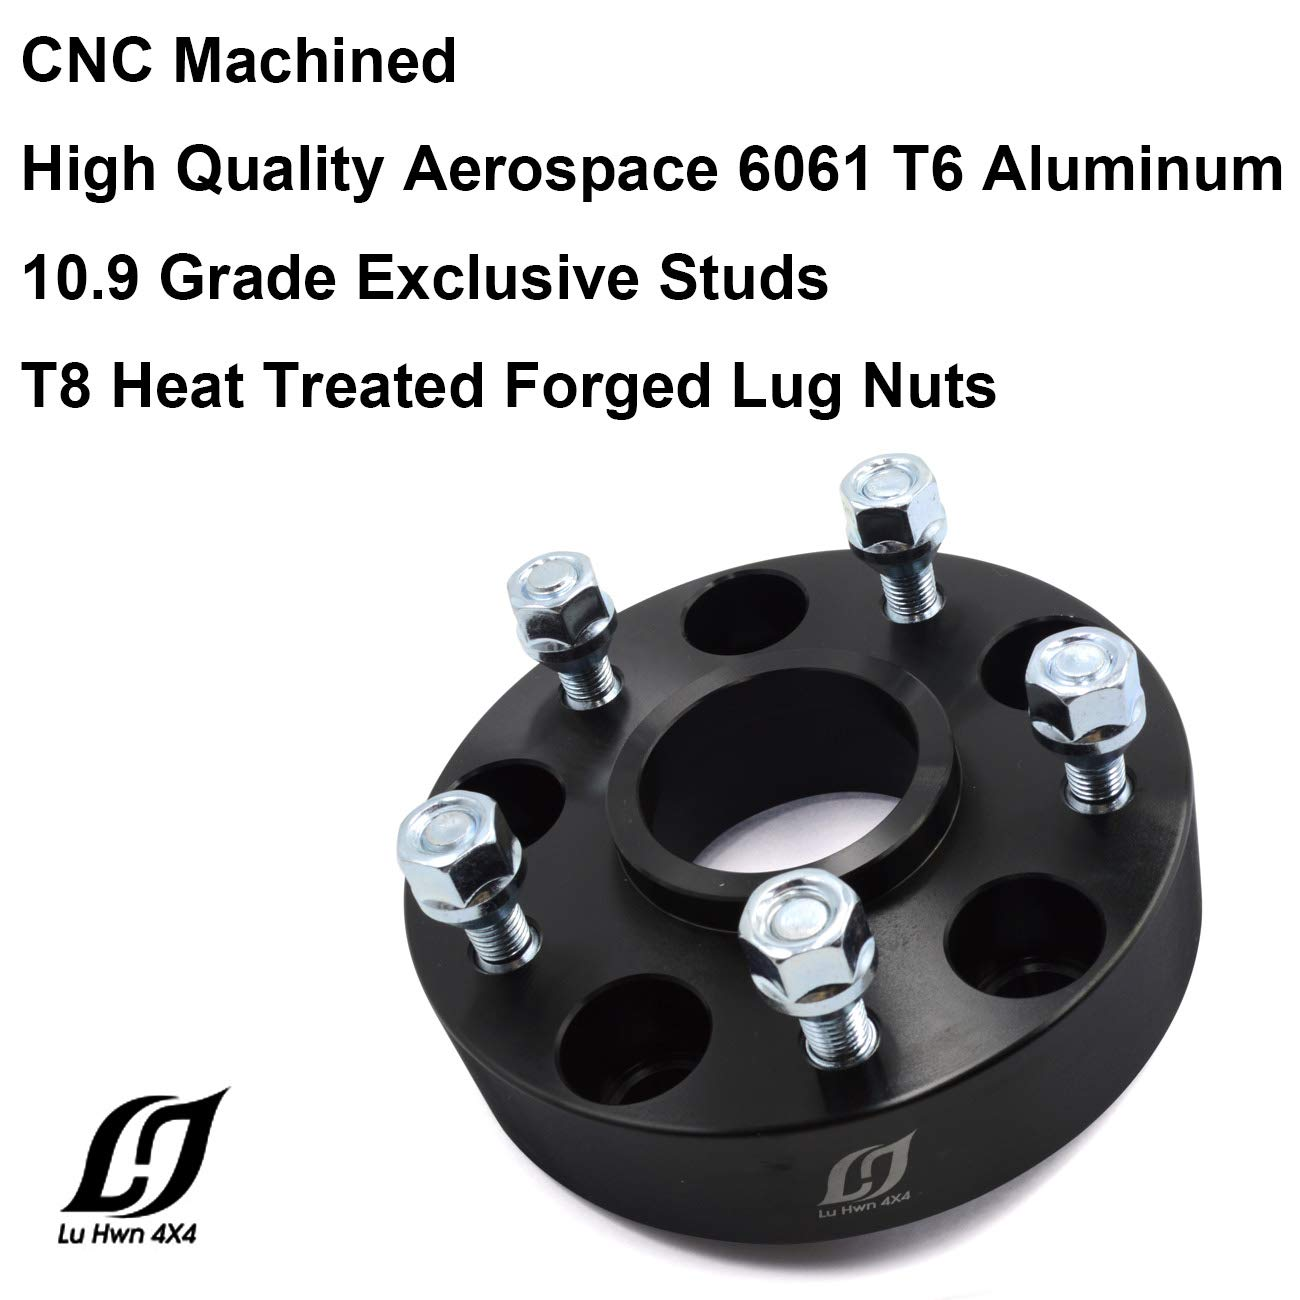 LU HWN 4X4 5x5 Wheel Spacers 1.5 inch with 14x1.5 Studs for Jeep Grand Cherokee WK2 2011-2019 Pack of 4 Wrangler JL 2018-2019